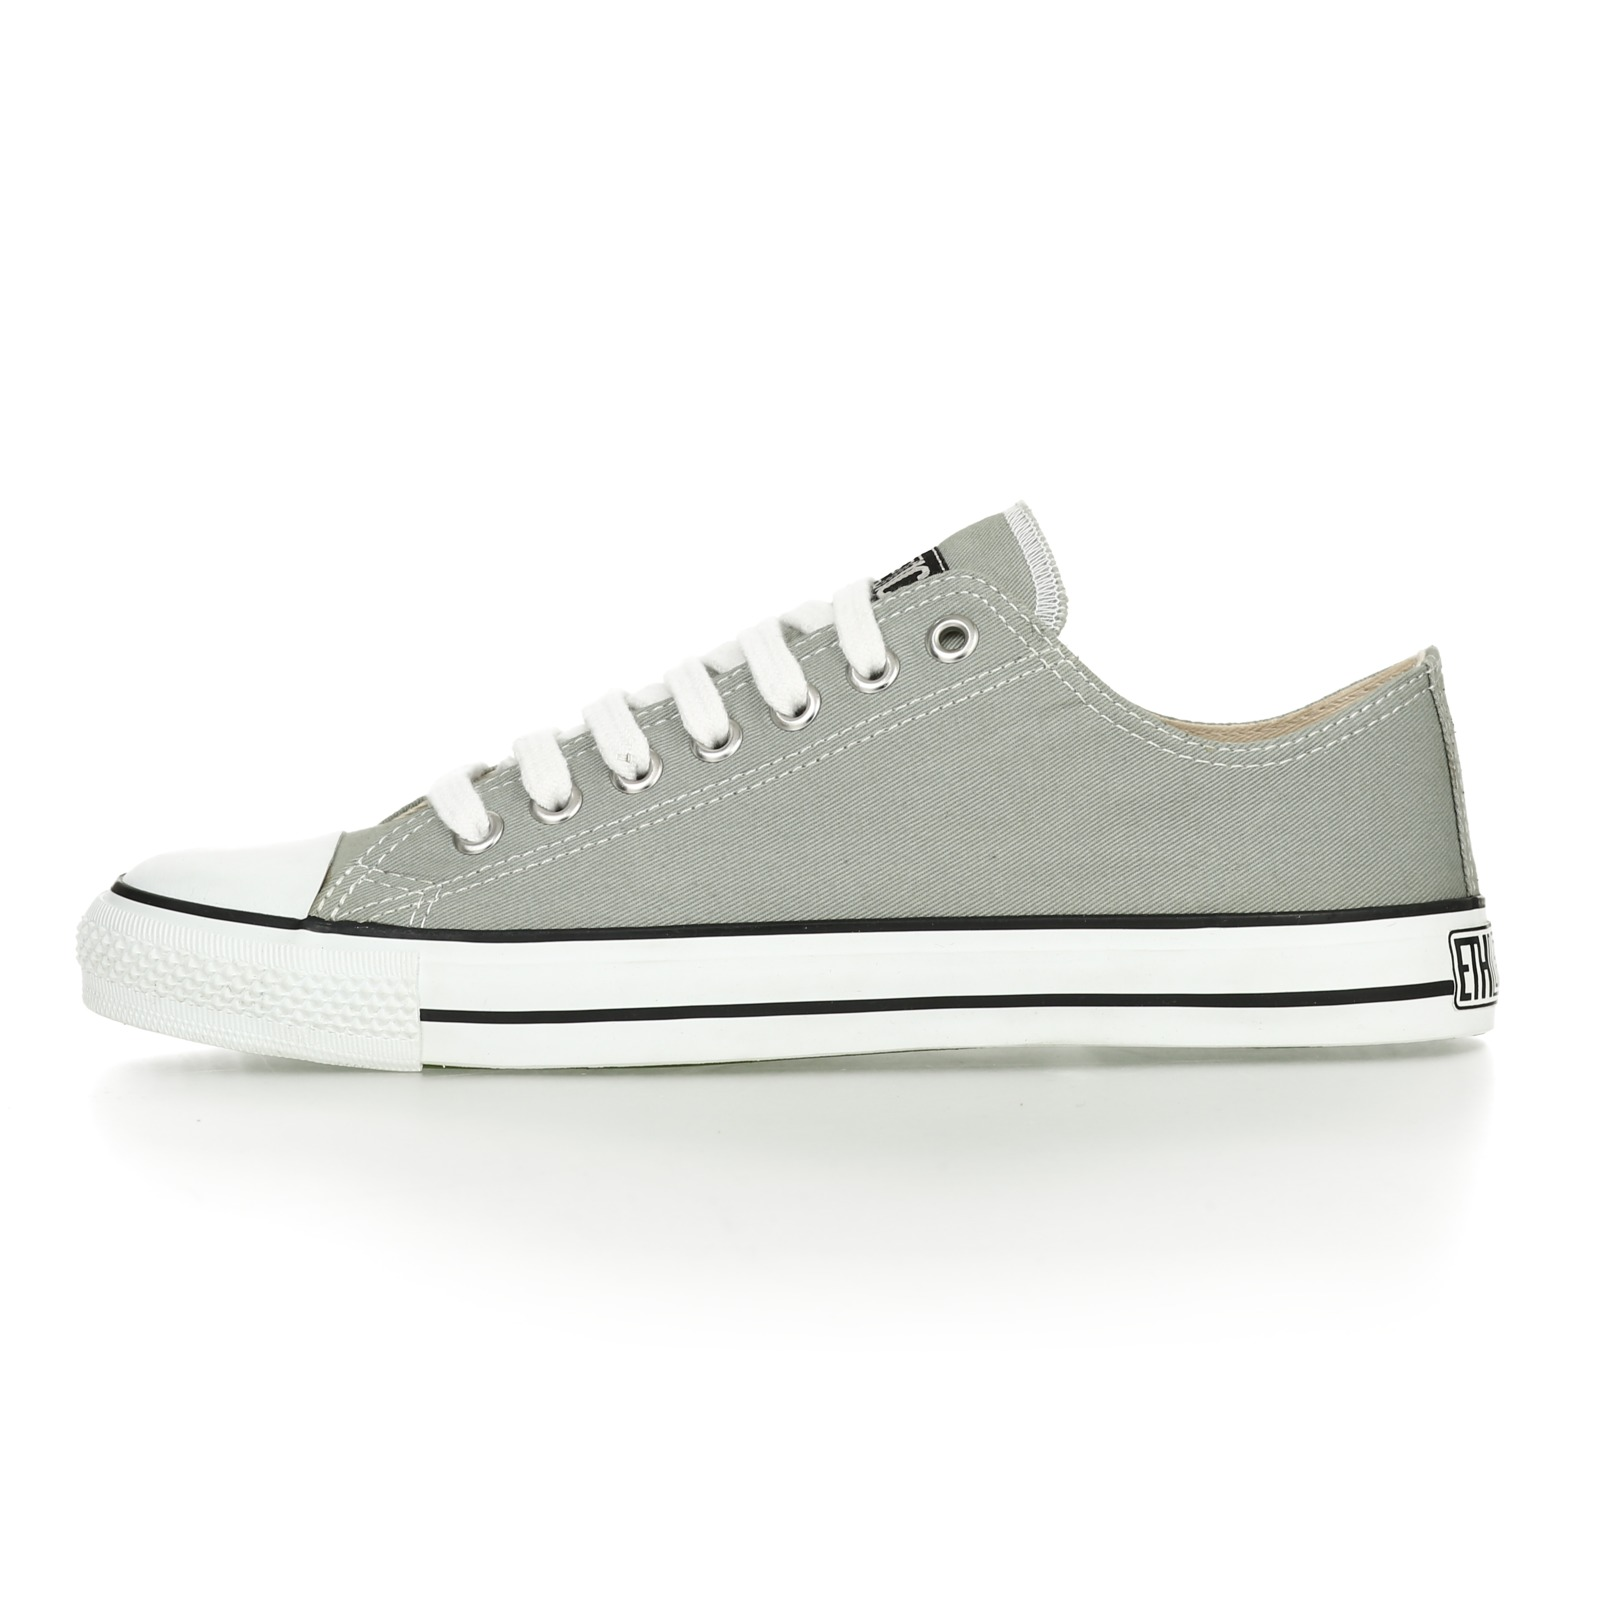 FAIR TRAINER WHITE CAP LoCut CLASSIC URBAN GREY JUST WHITE